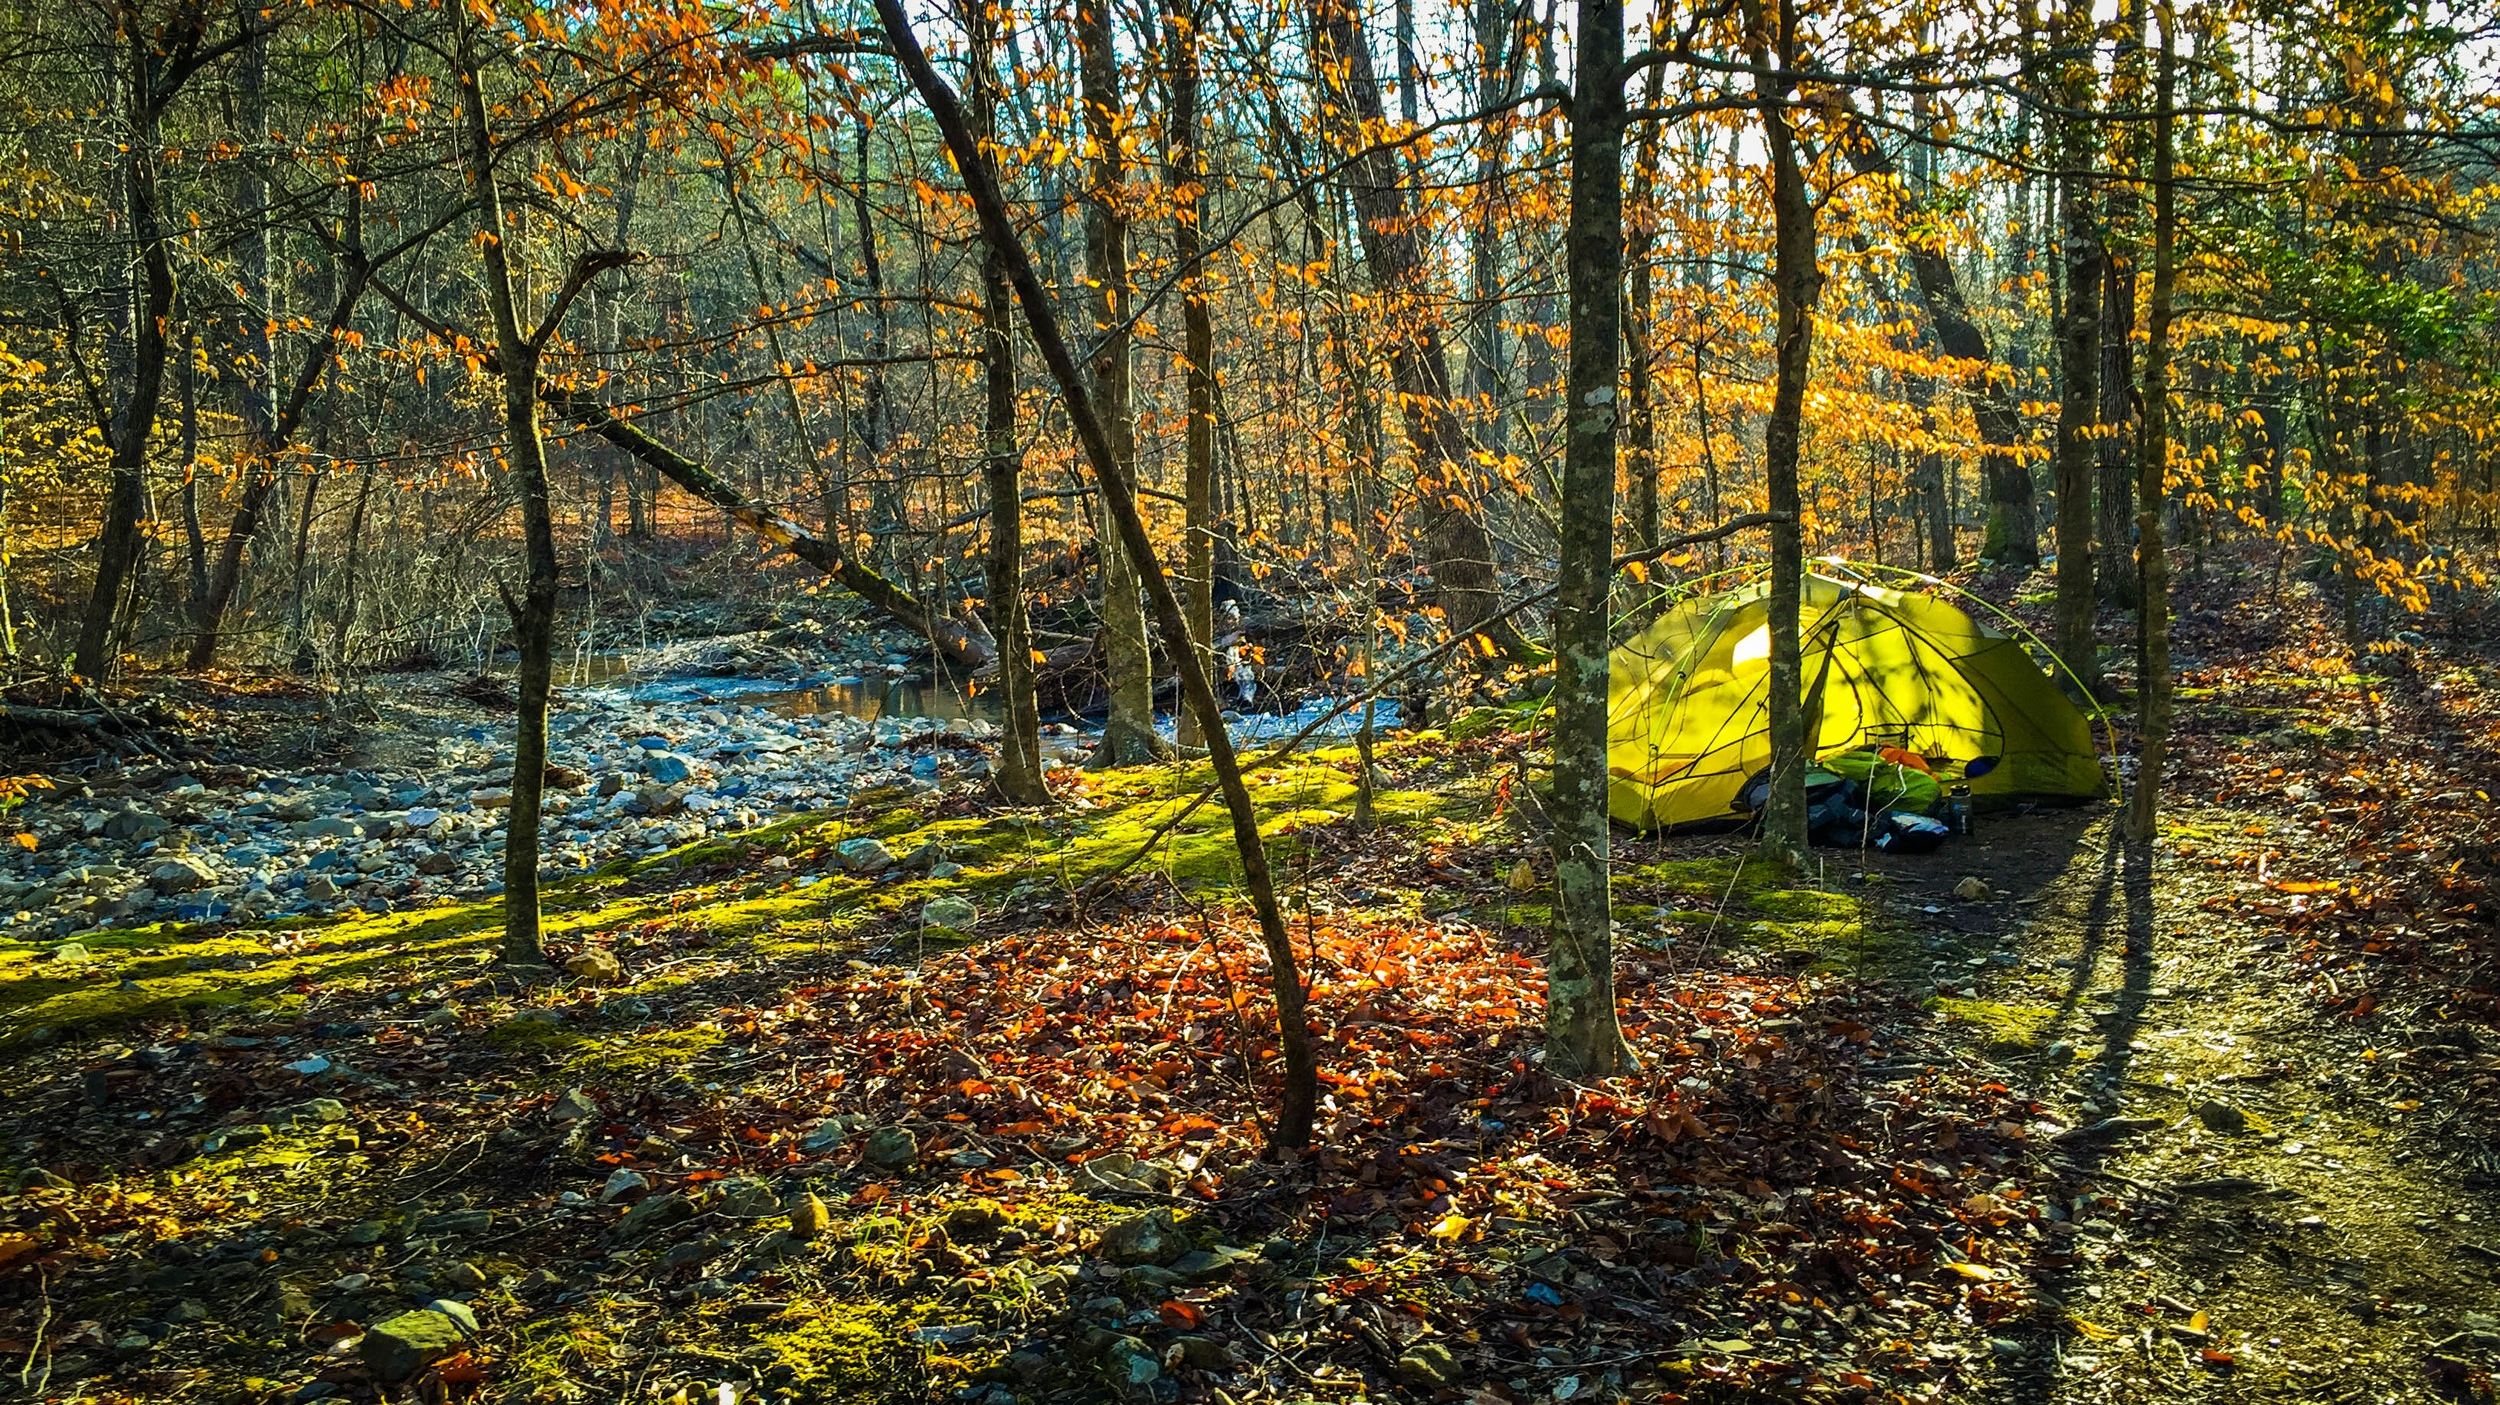 Arkansas abounds with breathtaking outdoor escapes like the Eagle Rock Loop Trail, seen here.